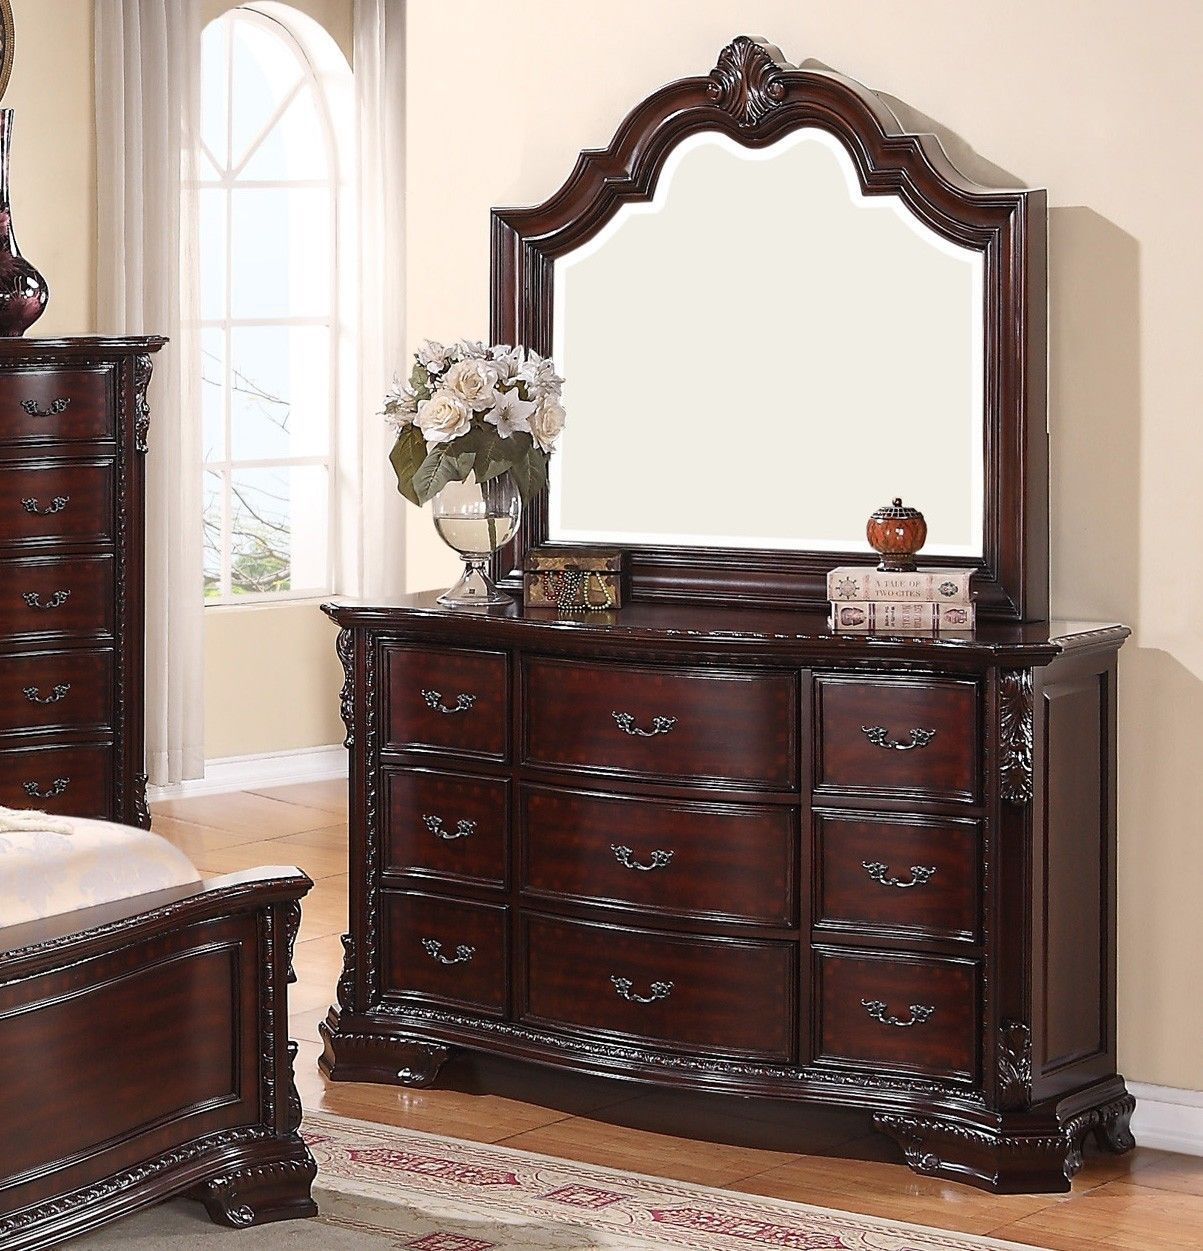 crown mark rb1100 sheffield queen size bedroom set 5pc traditional style bedroom sets. Black Bedroom Furniture Sets. Home Design Ideas